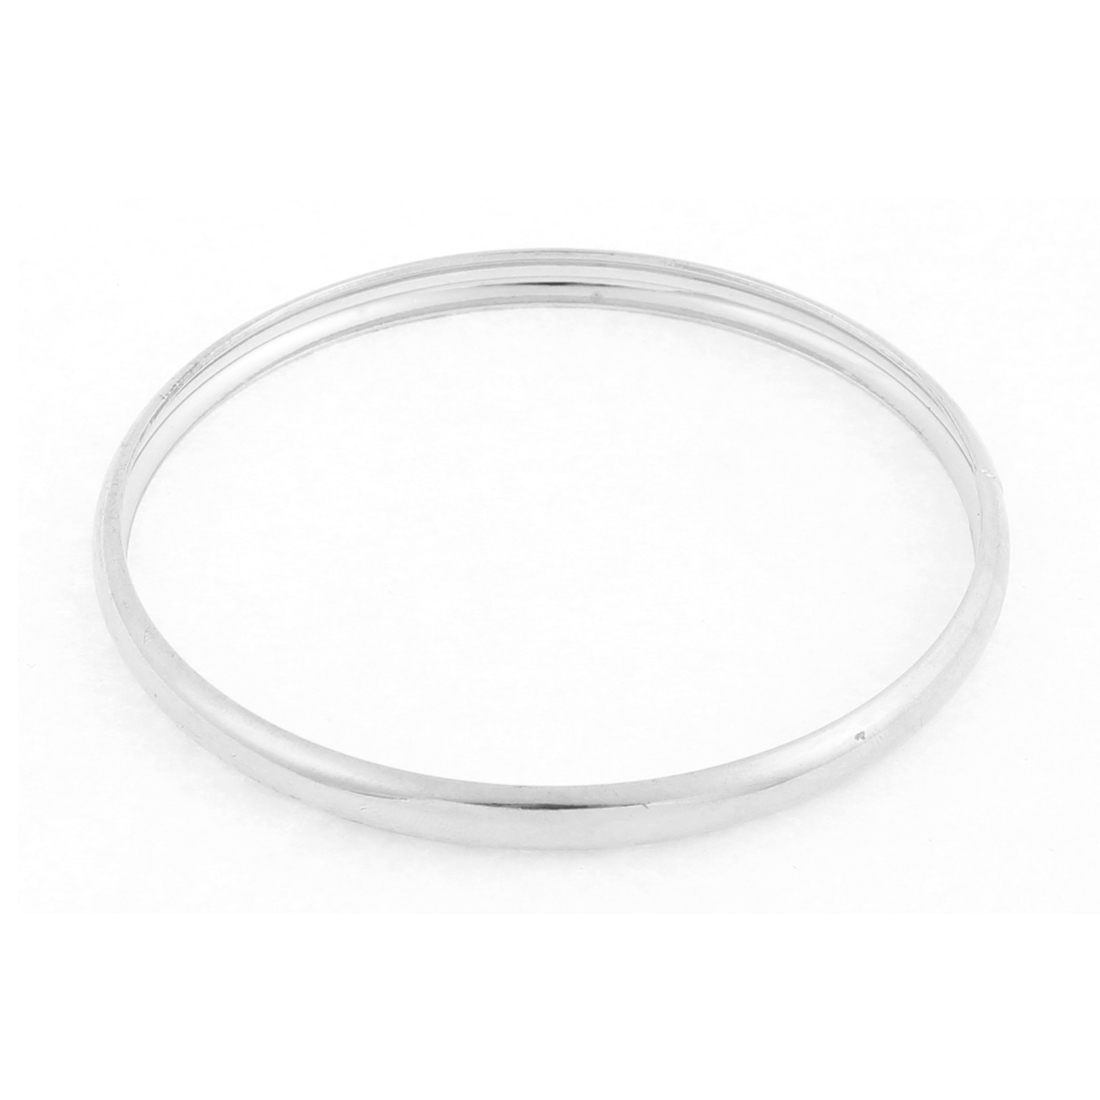 Lady Circle Design Wrist Bangle Bracelet Silver Tone